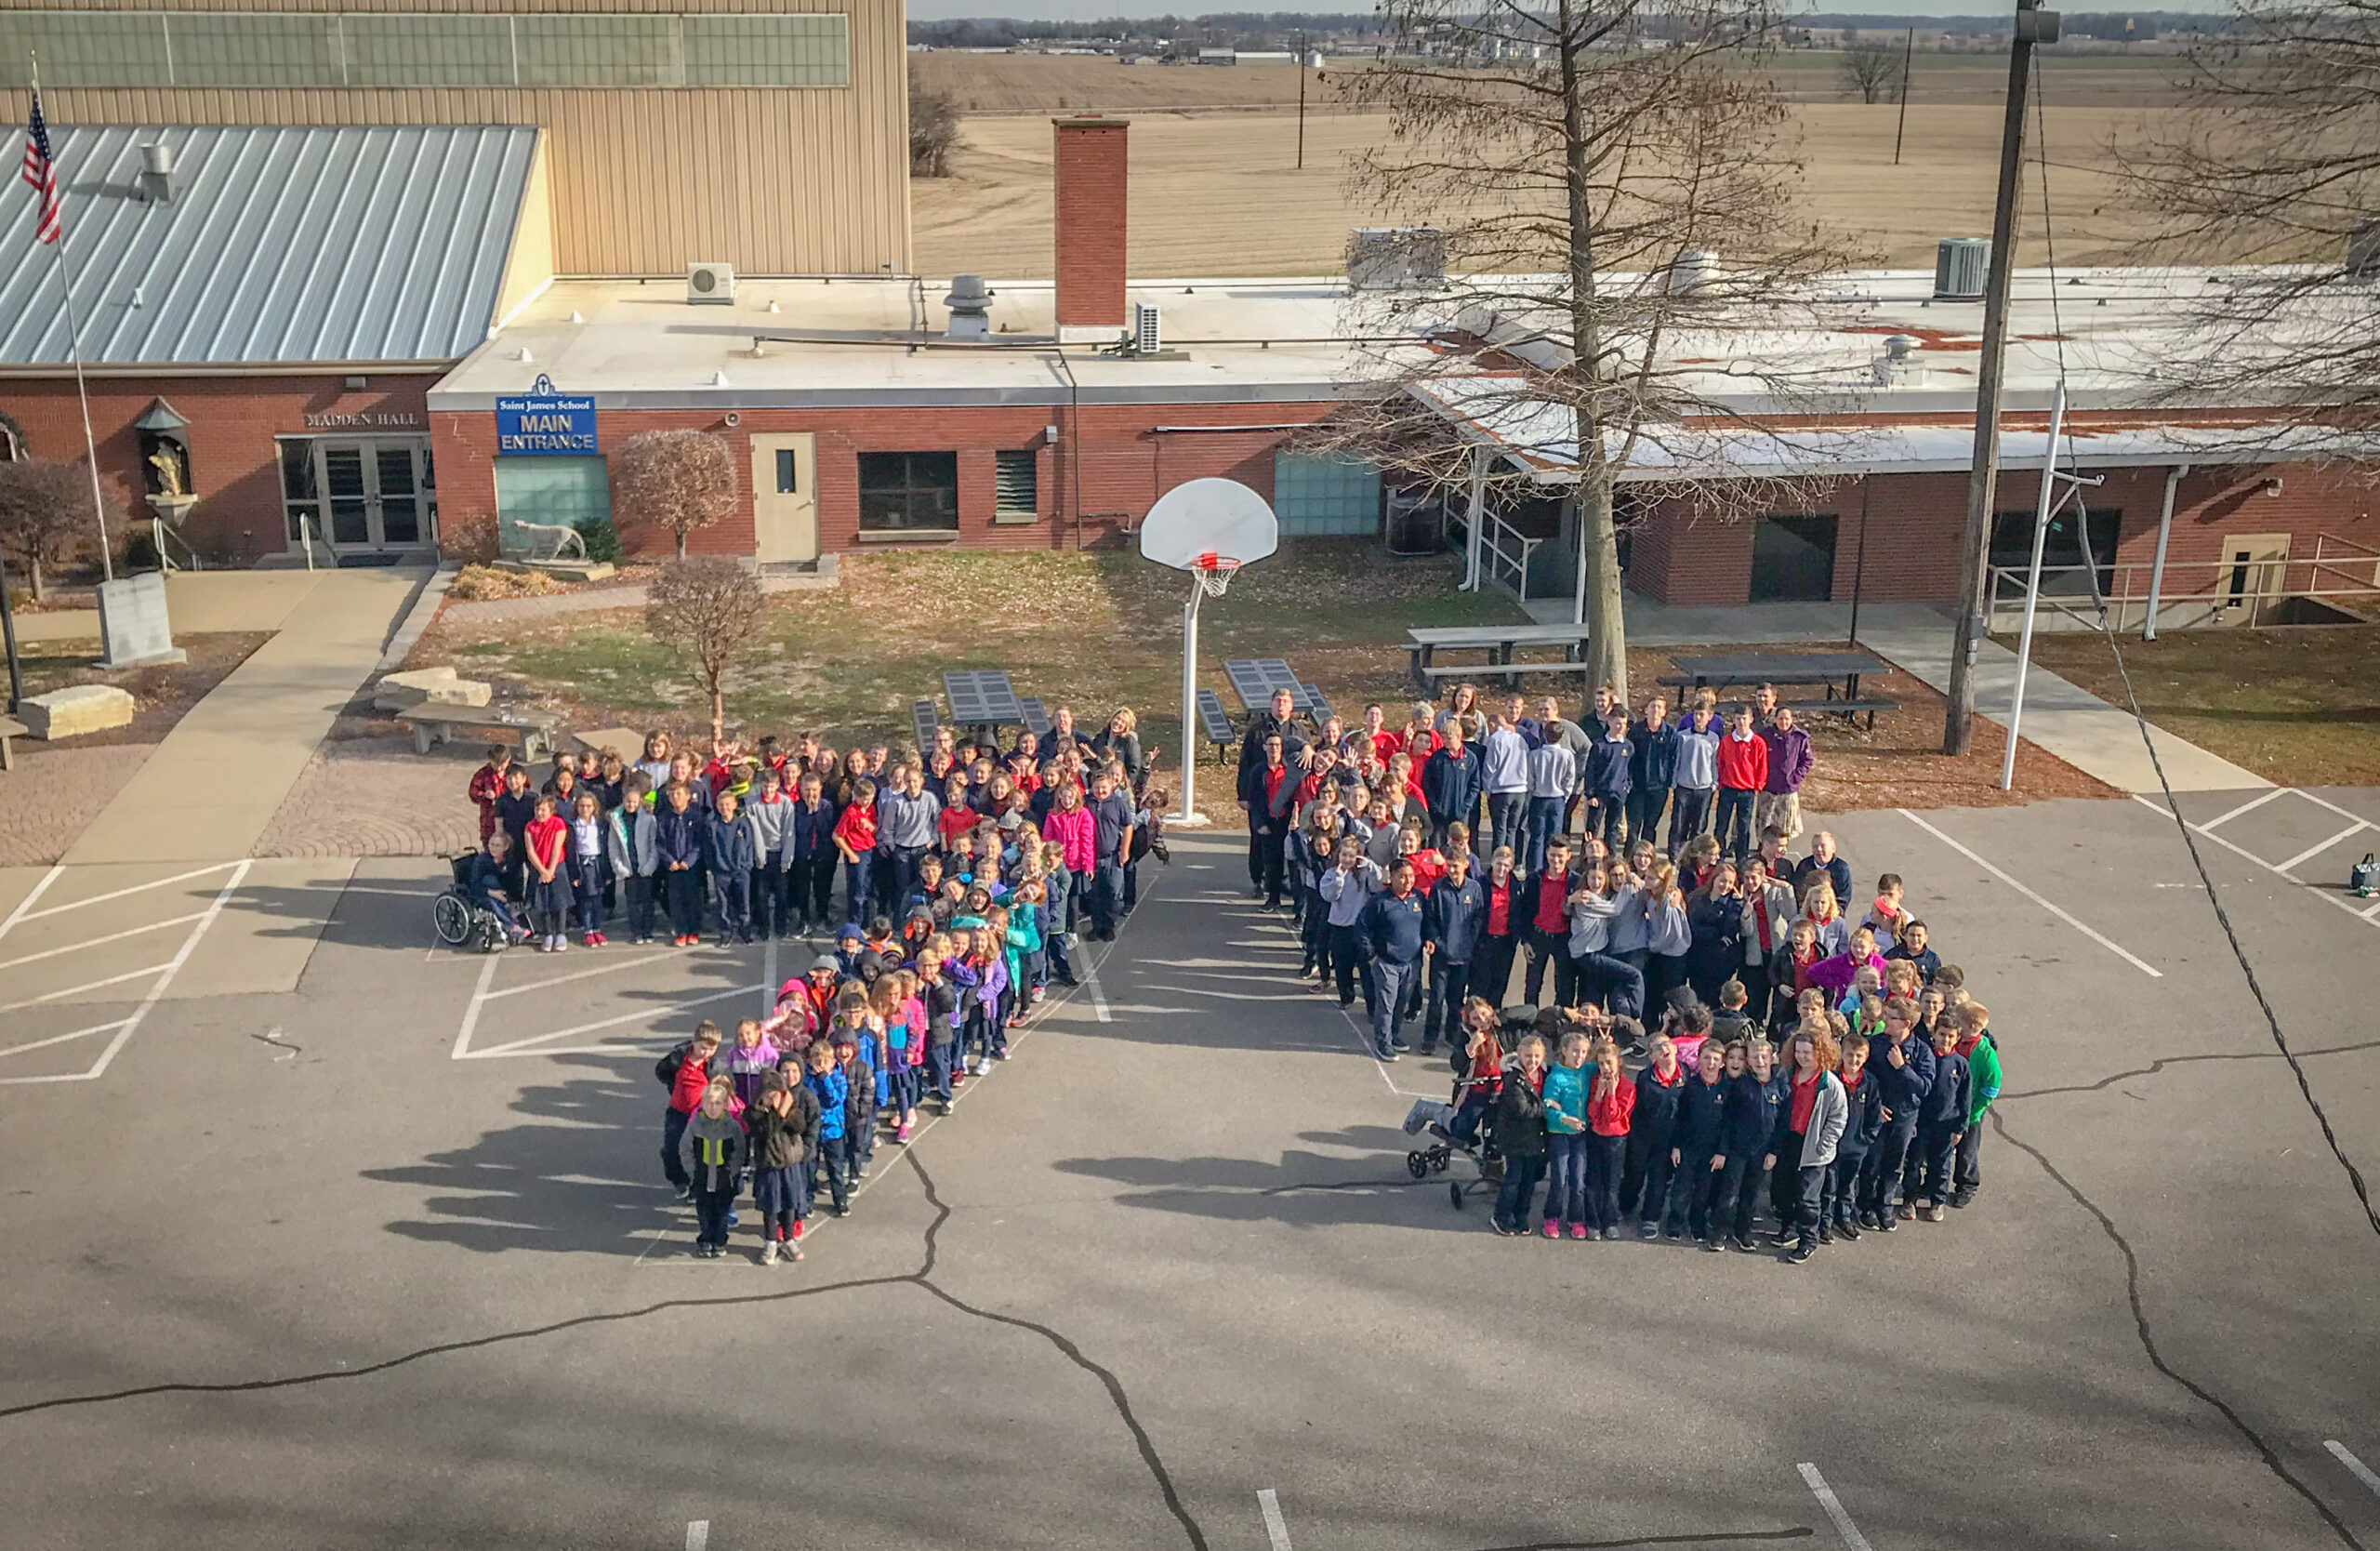 Happy 75th anniversary to the Diocese of Evansville from the students and staff at St. James School in Haubstadt! Submitted photo